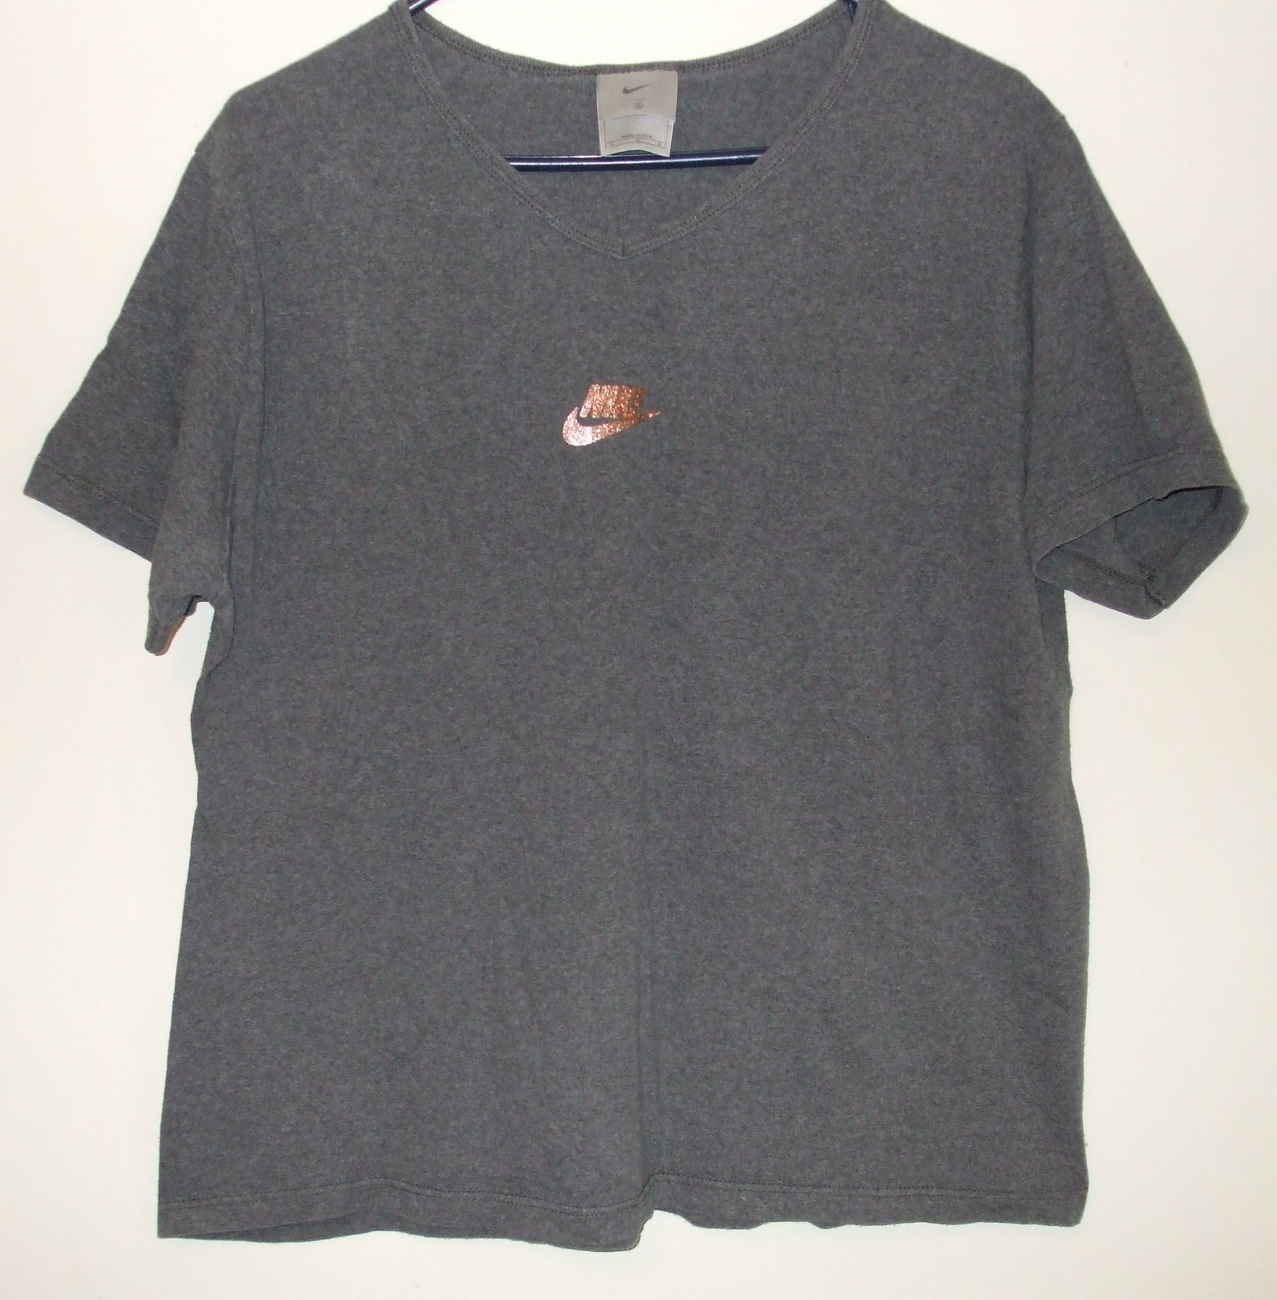 Womens Nike Dark Gray Short Sleeve V Neck Top  Size XL